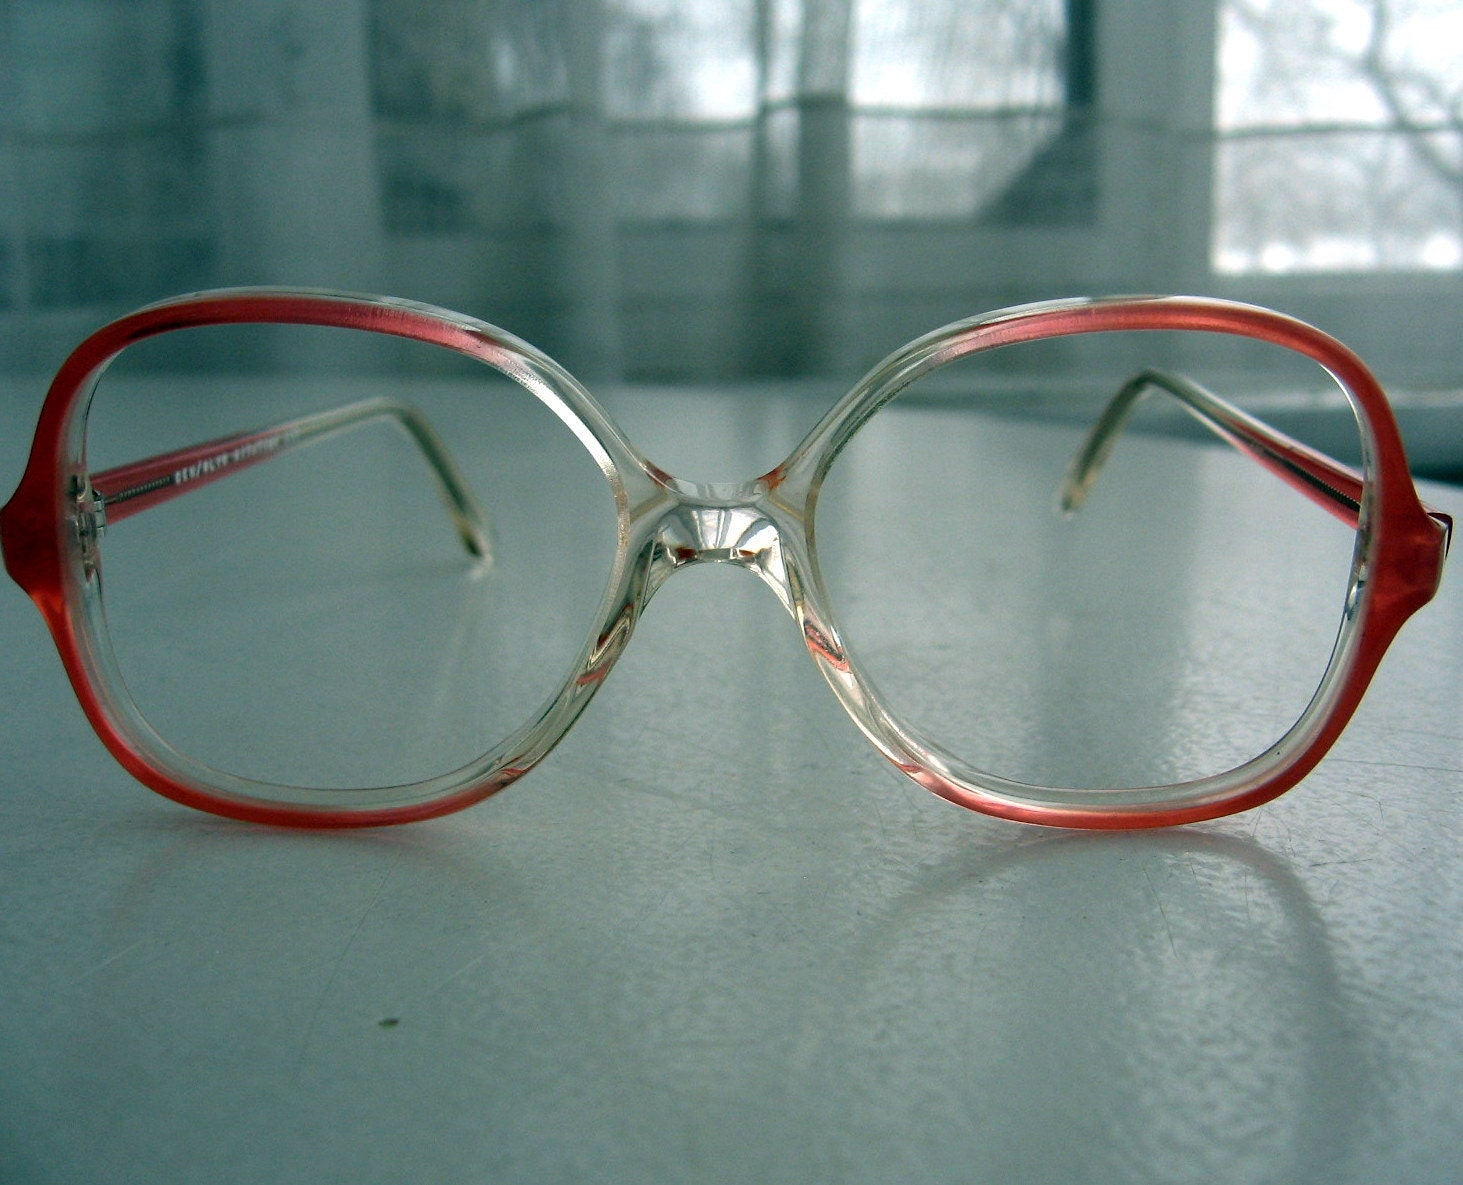 Eyeglasses Frames Small Faces : TEEN Small Face Vintage 80s Big Eyeglasses Frames by Century